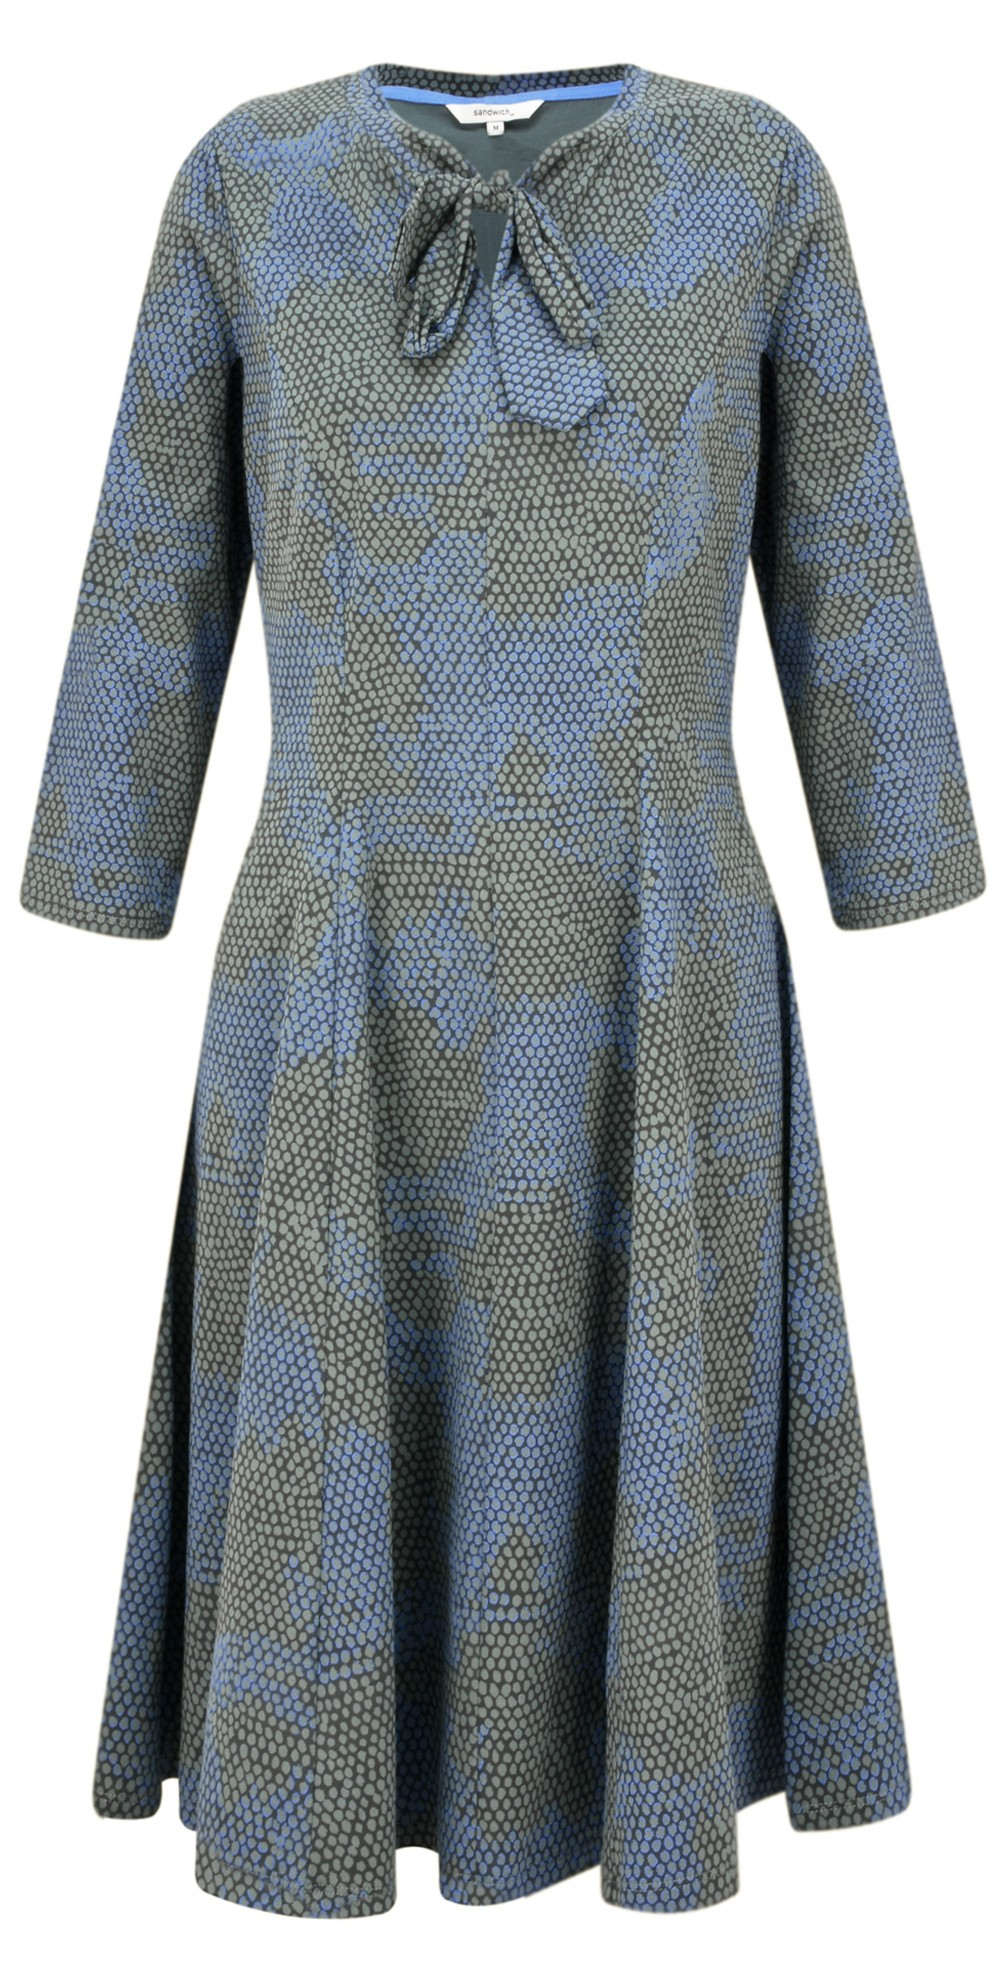 Fit and Flare Tie Neck Snakeskin Dress main image